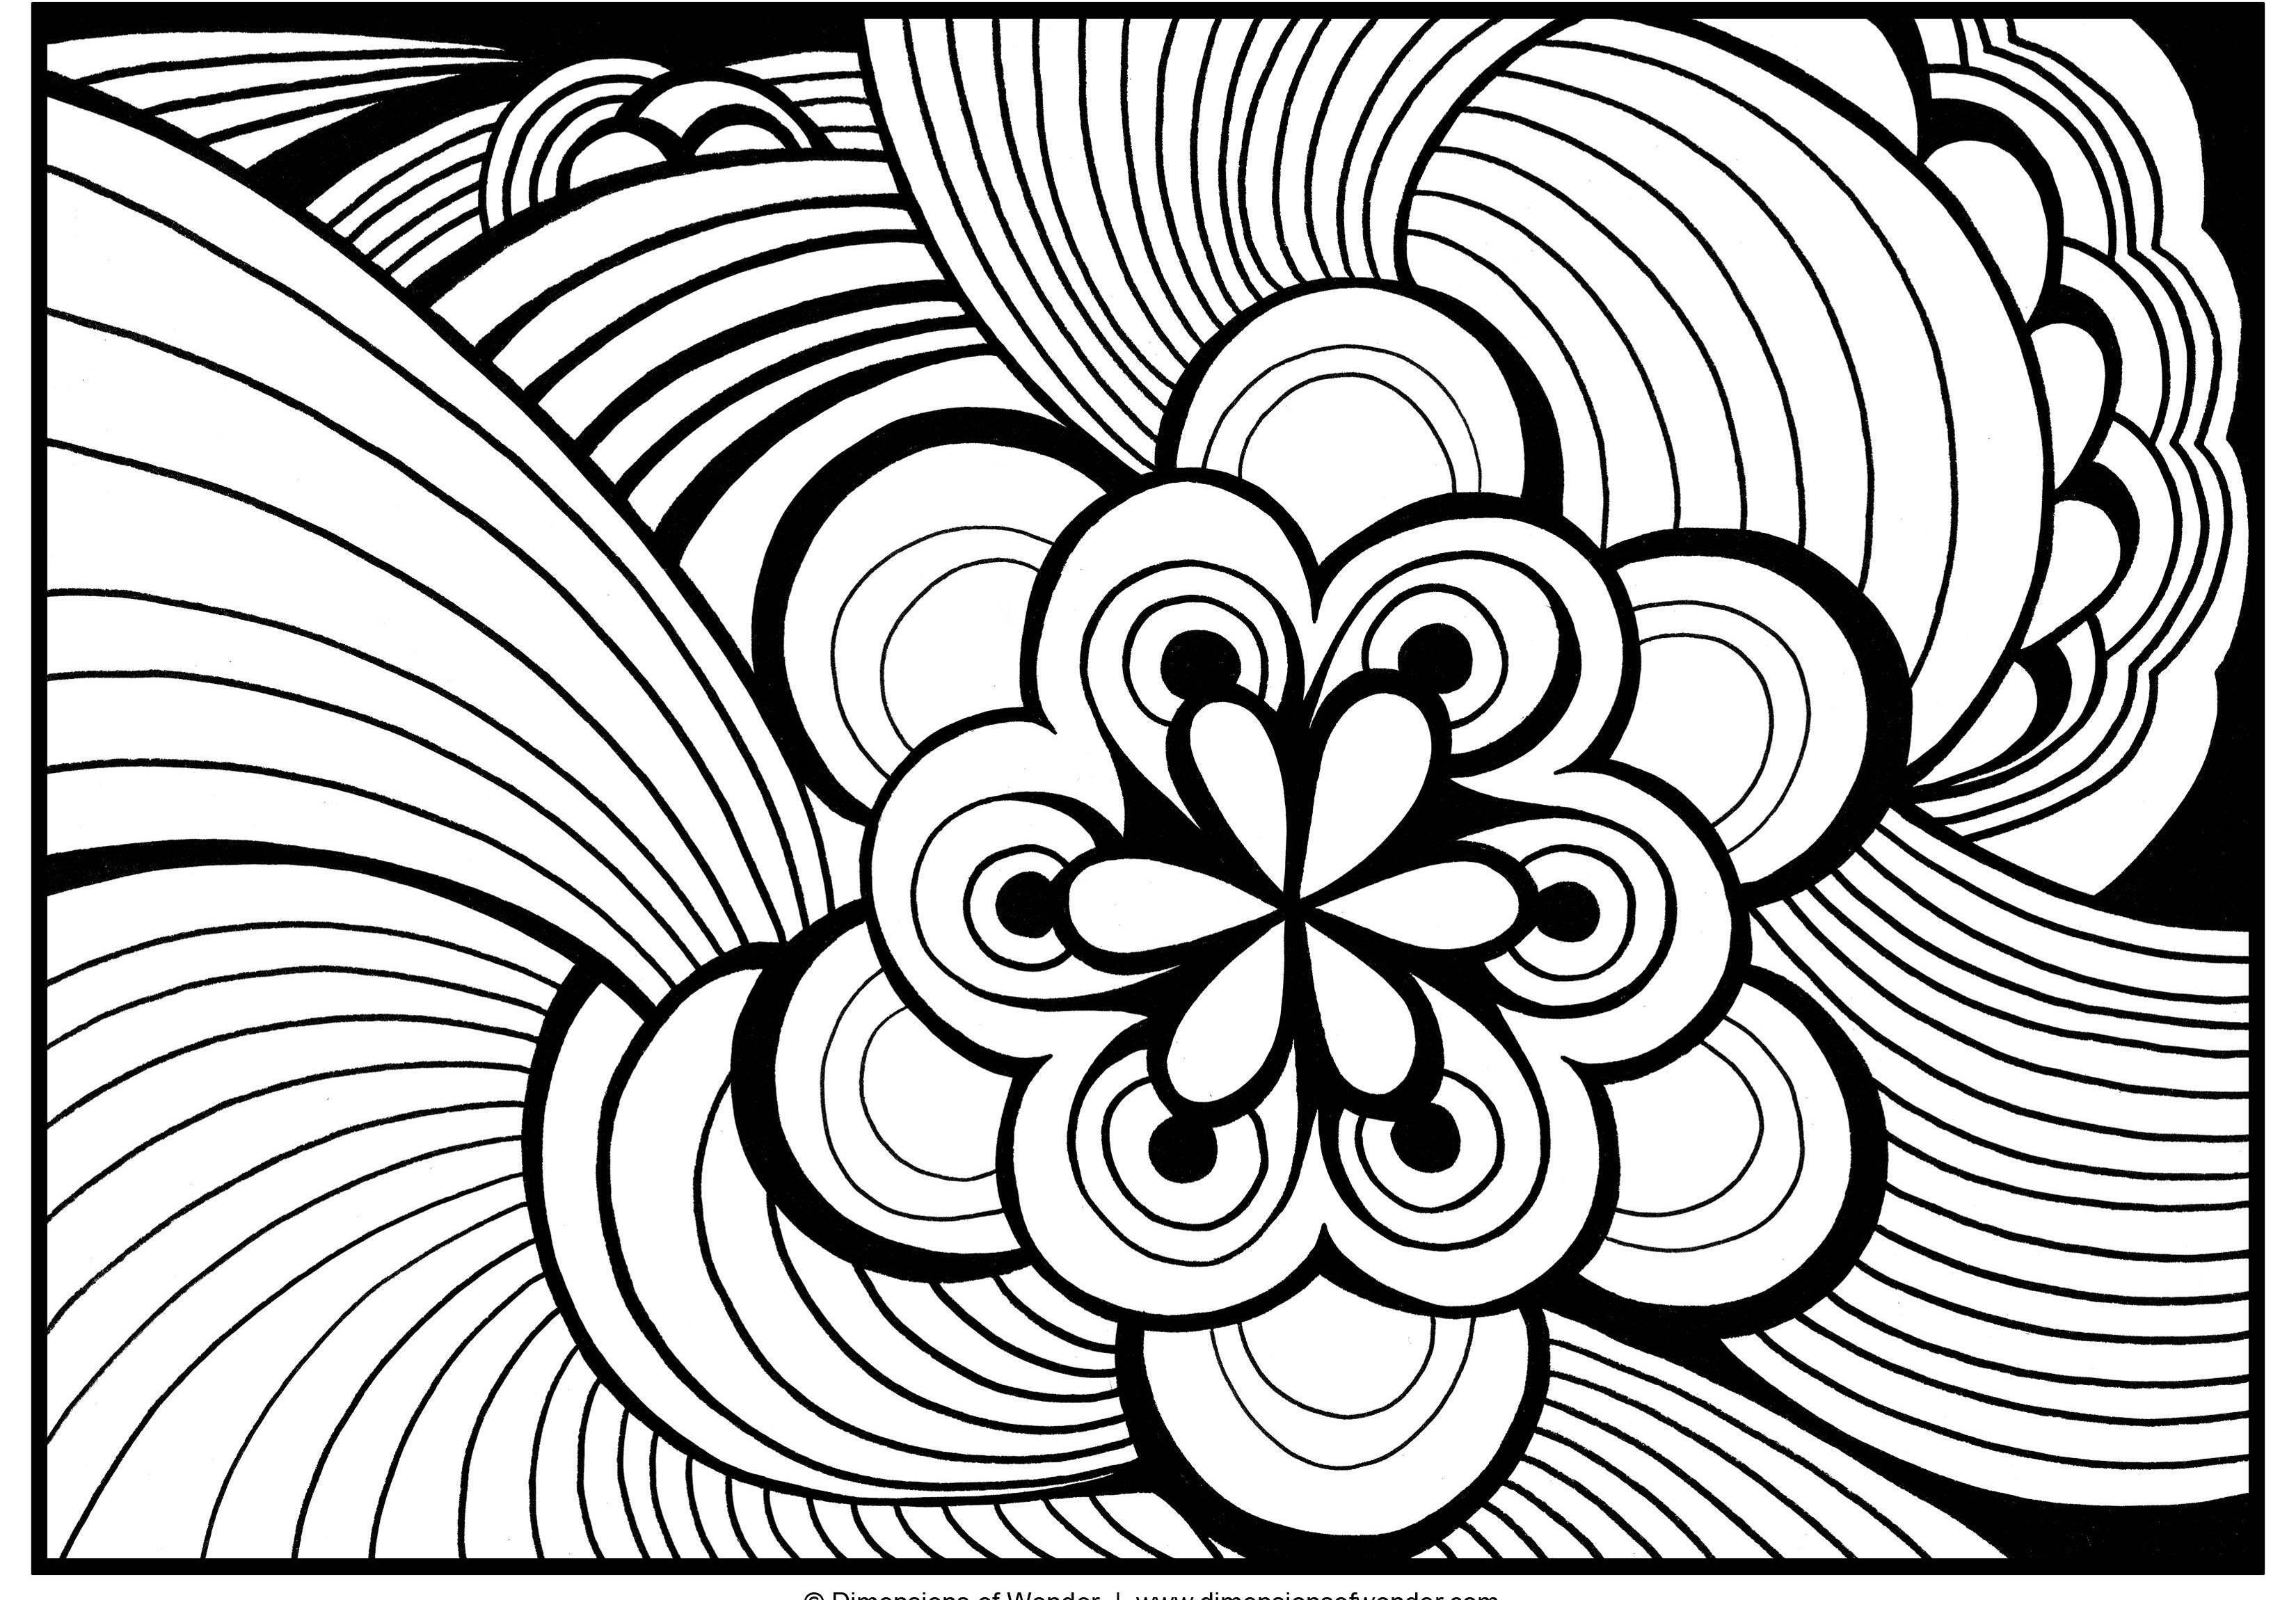 3300x2300 Lovely Free Coloring Pages For Adults Online